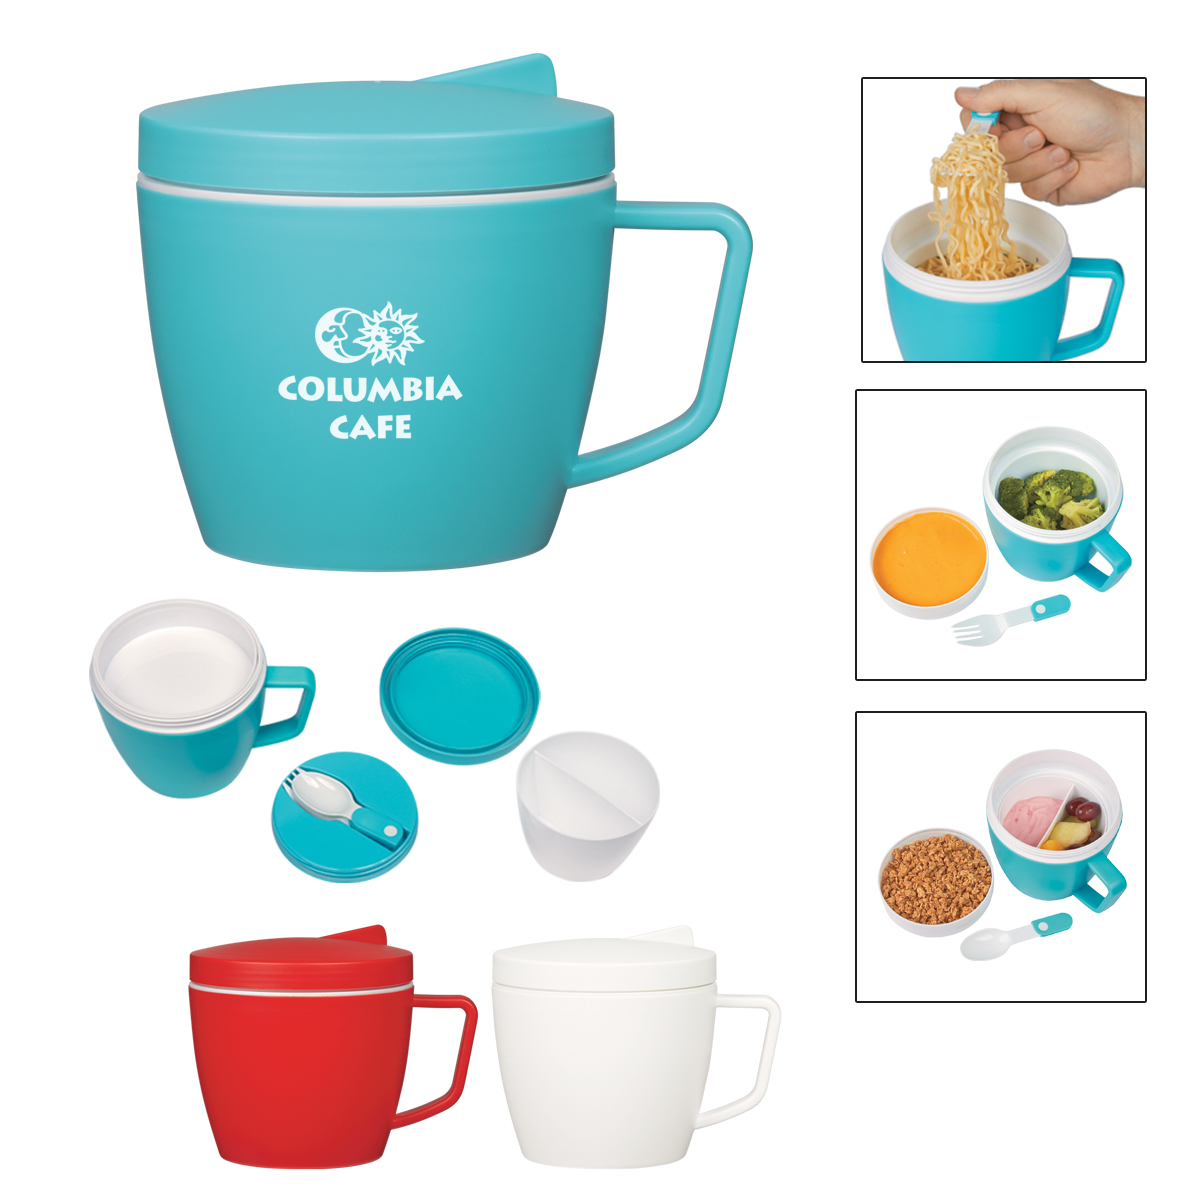 534290116-816 - 14 Oz. Thermal Mug With Spoon And Fork Set - thumbnail